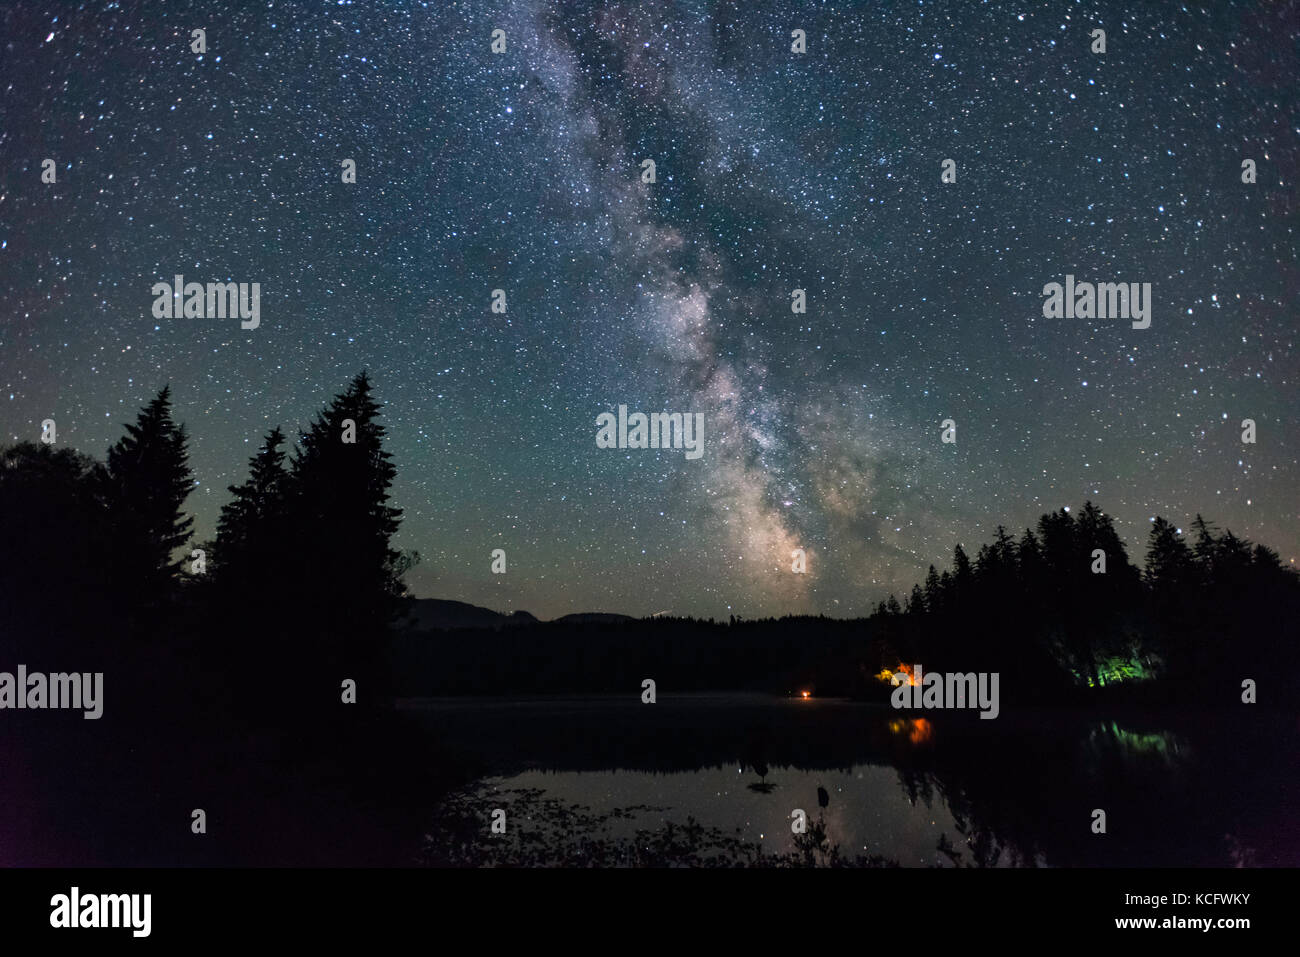 Milky Way, Fairy Lake Rec Site, Port Renfrew, Vancouver Island, BC, Canada - Stock Image